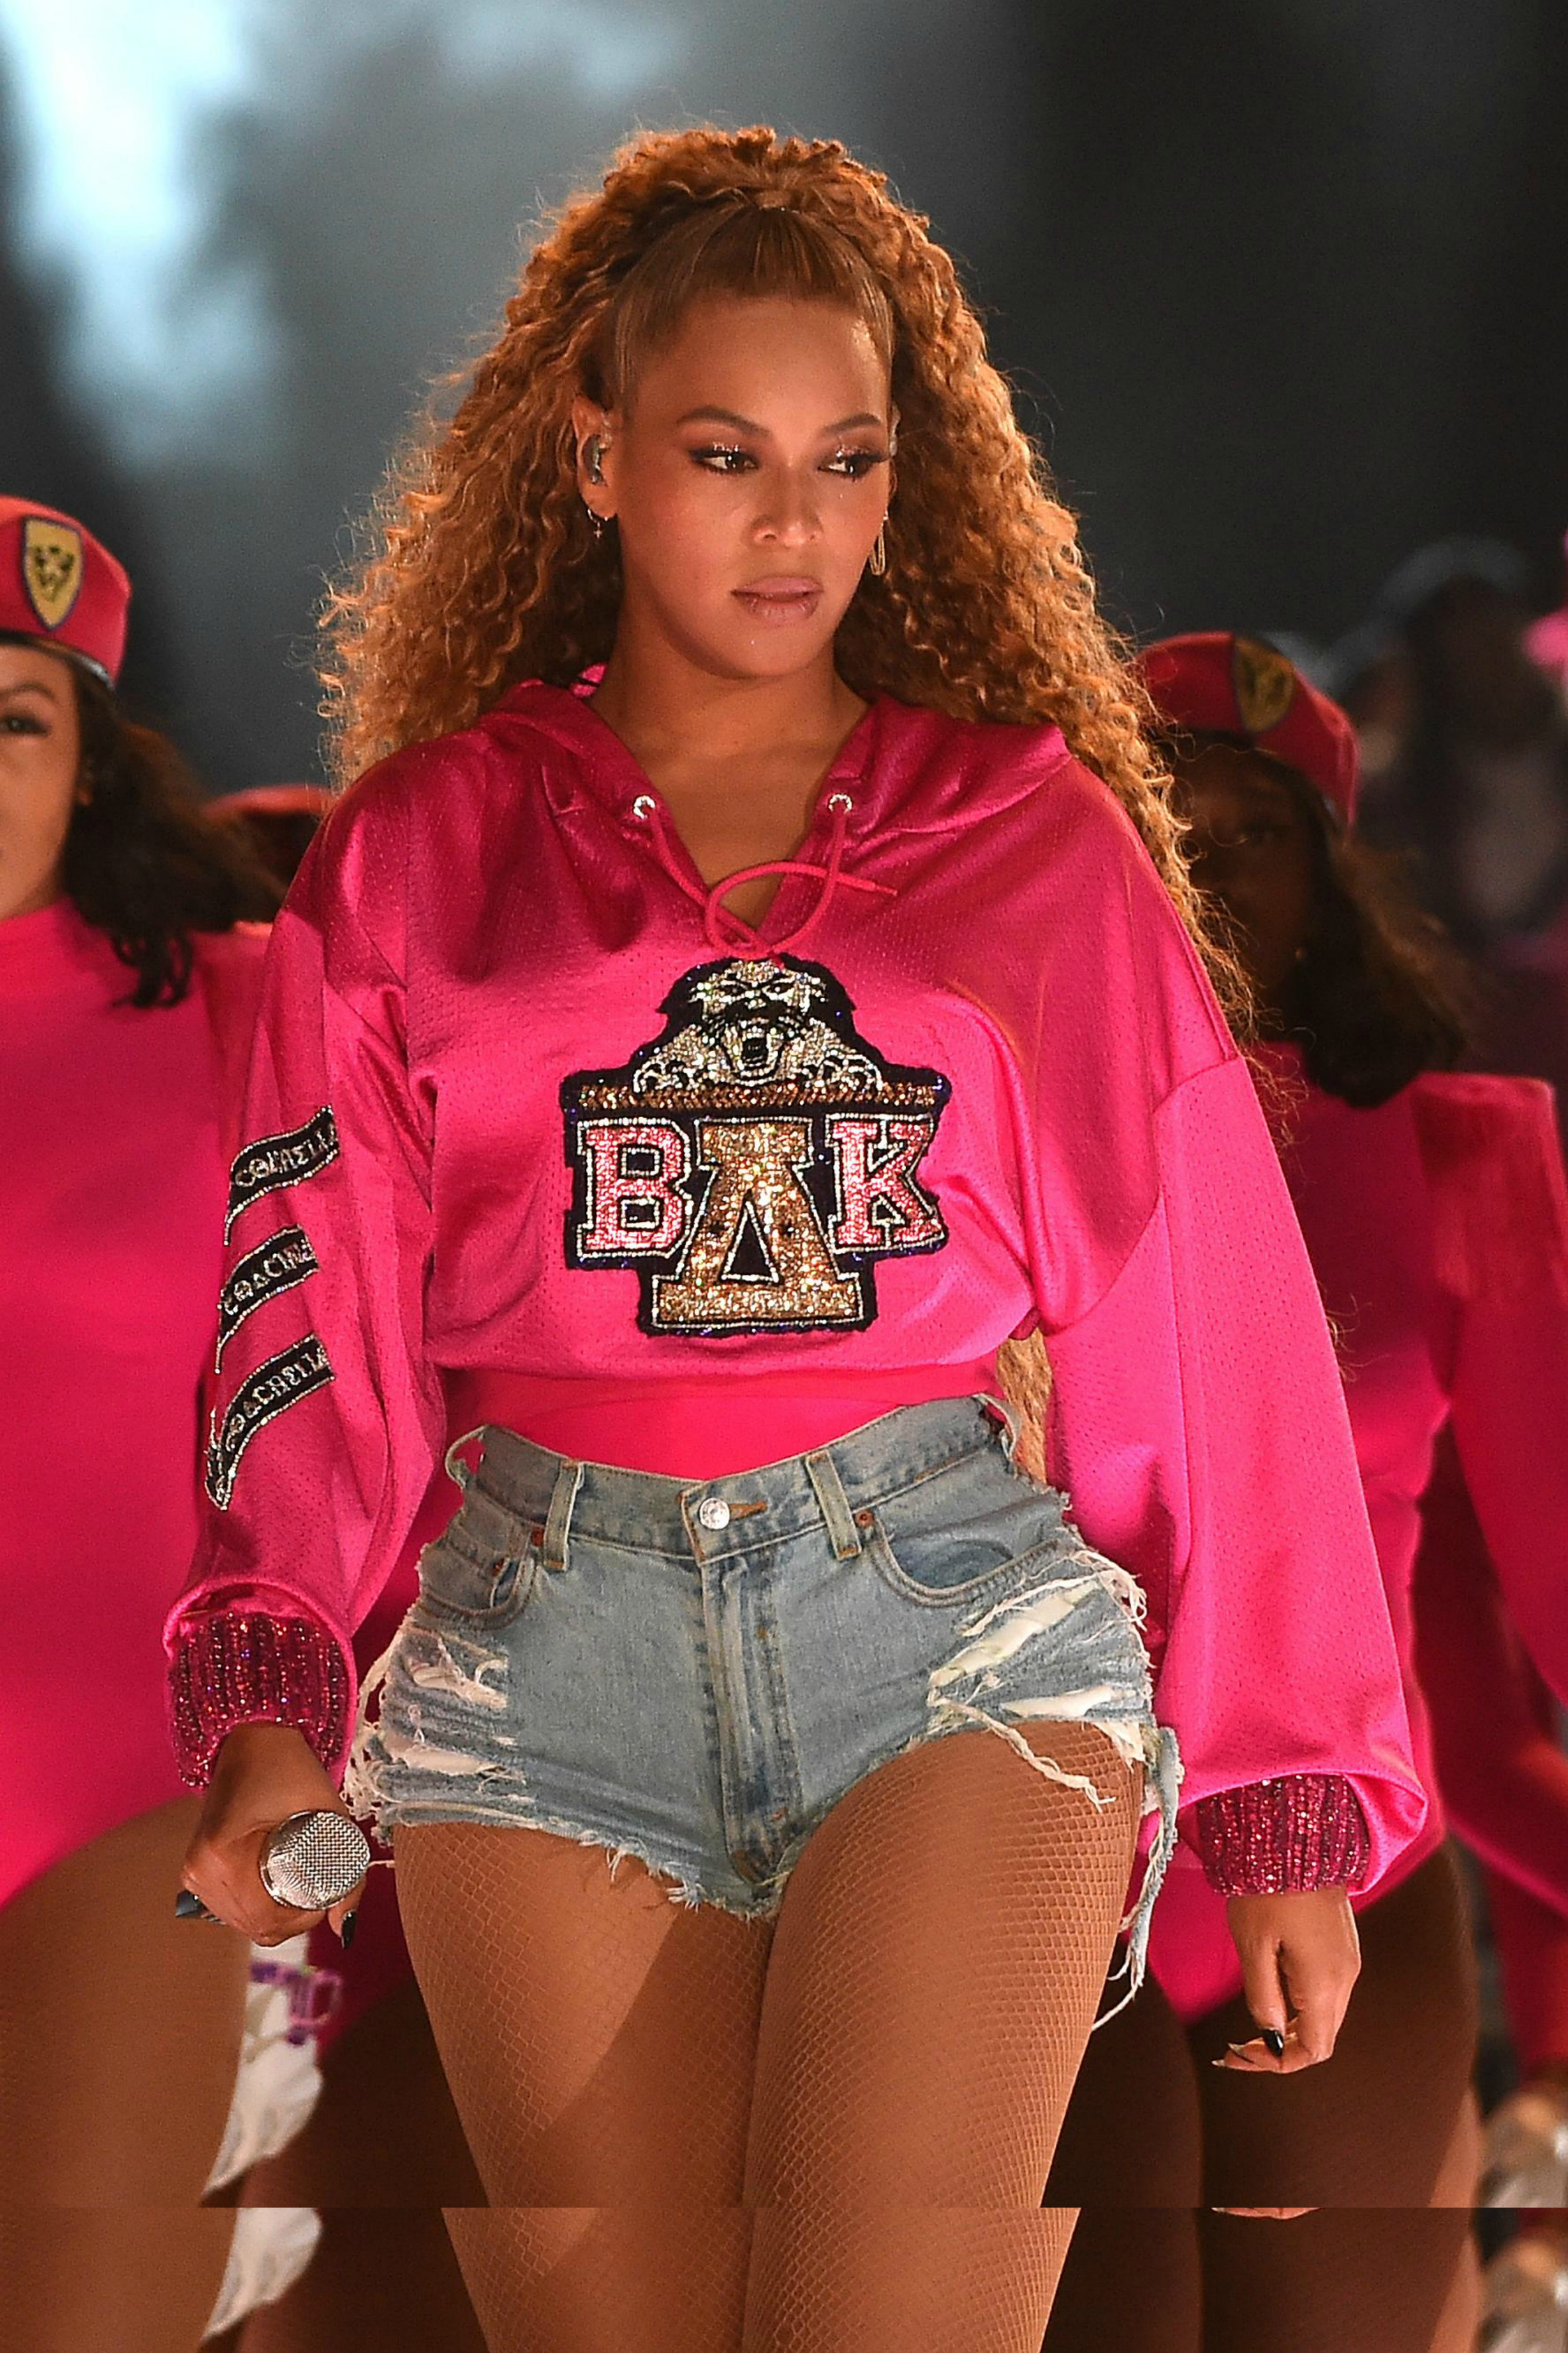 BEYONCE SHARES HER CHALLENGES AND DROPS SURPRISE 40-TRACK 'HOMECOMING' ALBUM